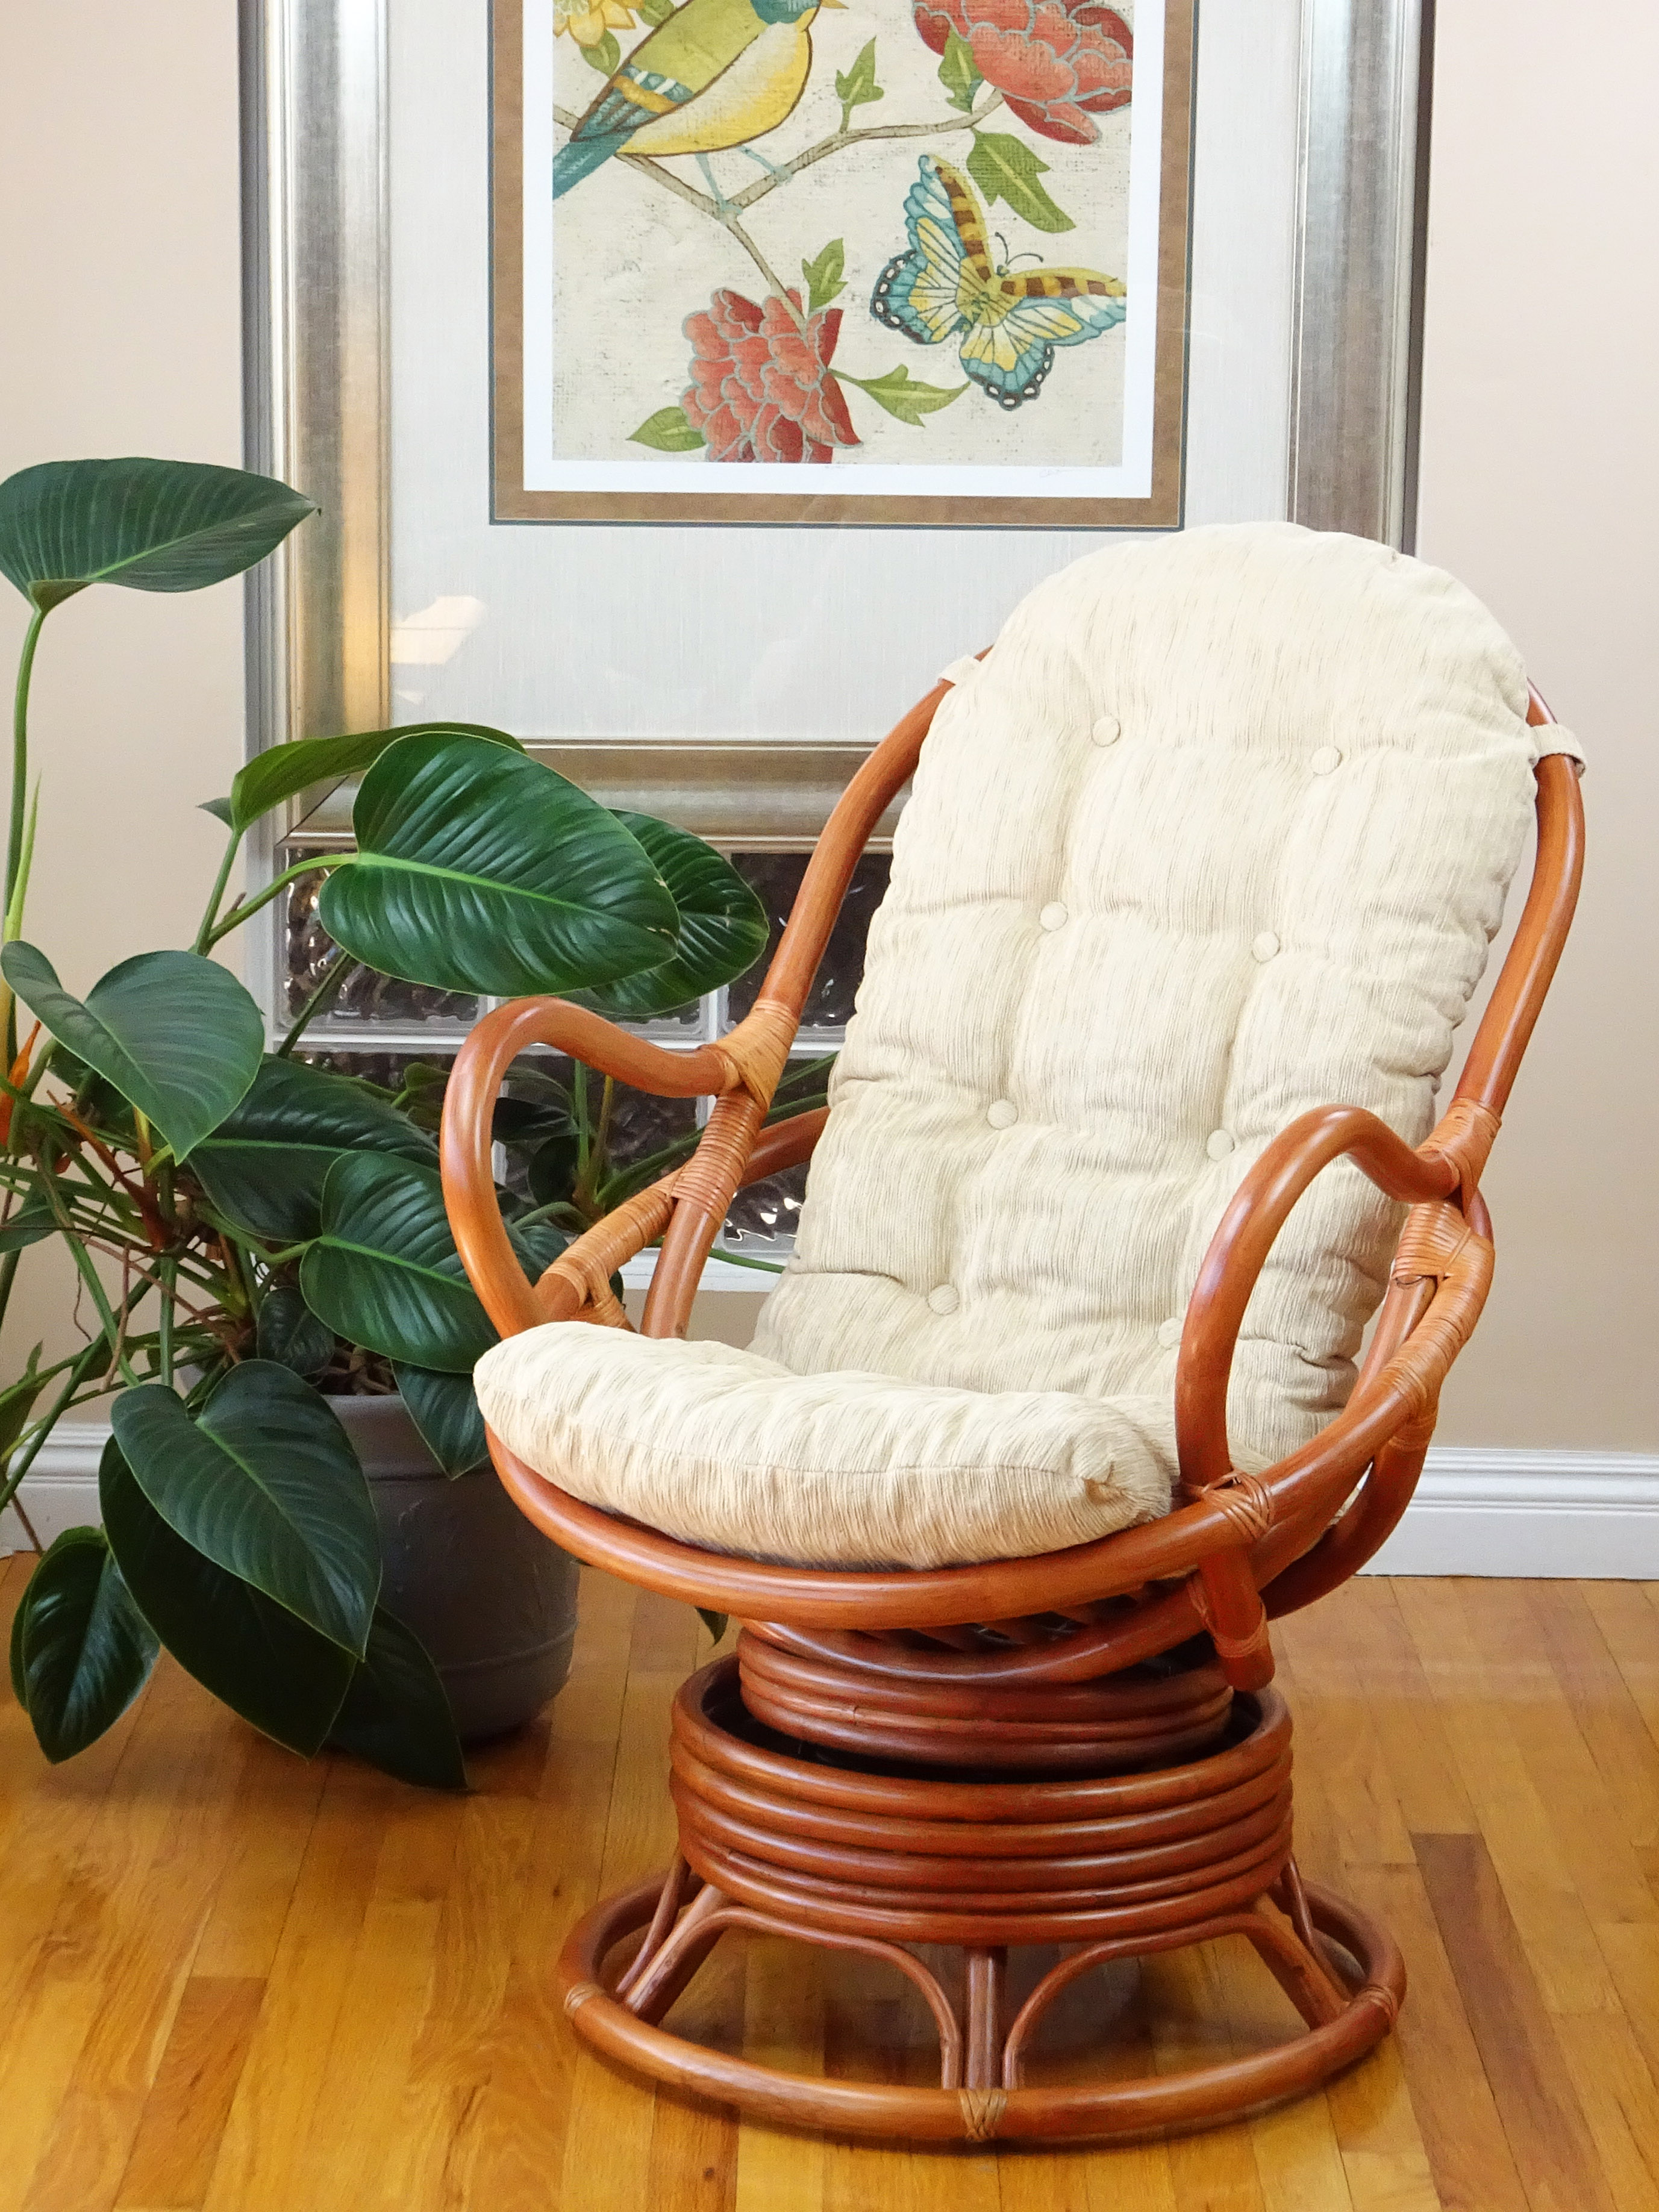 Buy Java Chair in USA best price free shipping  Rattan USA